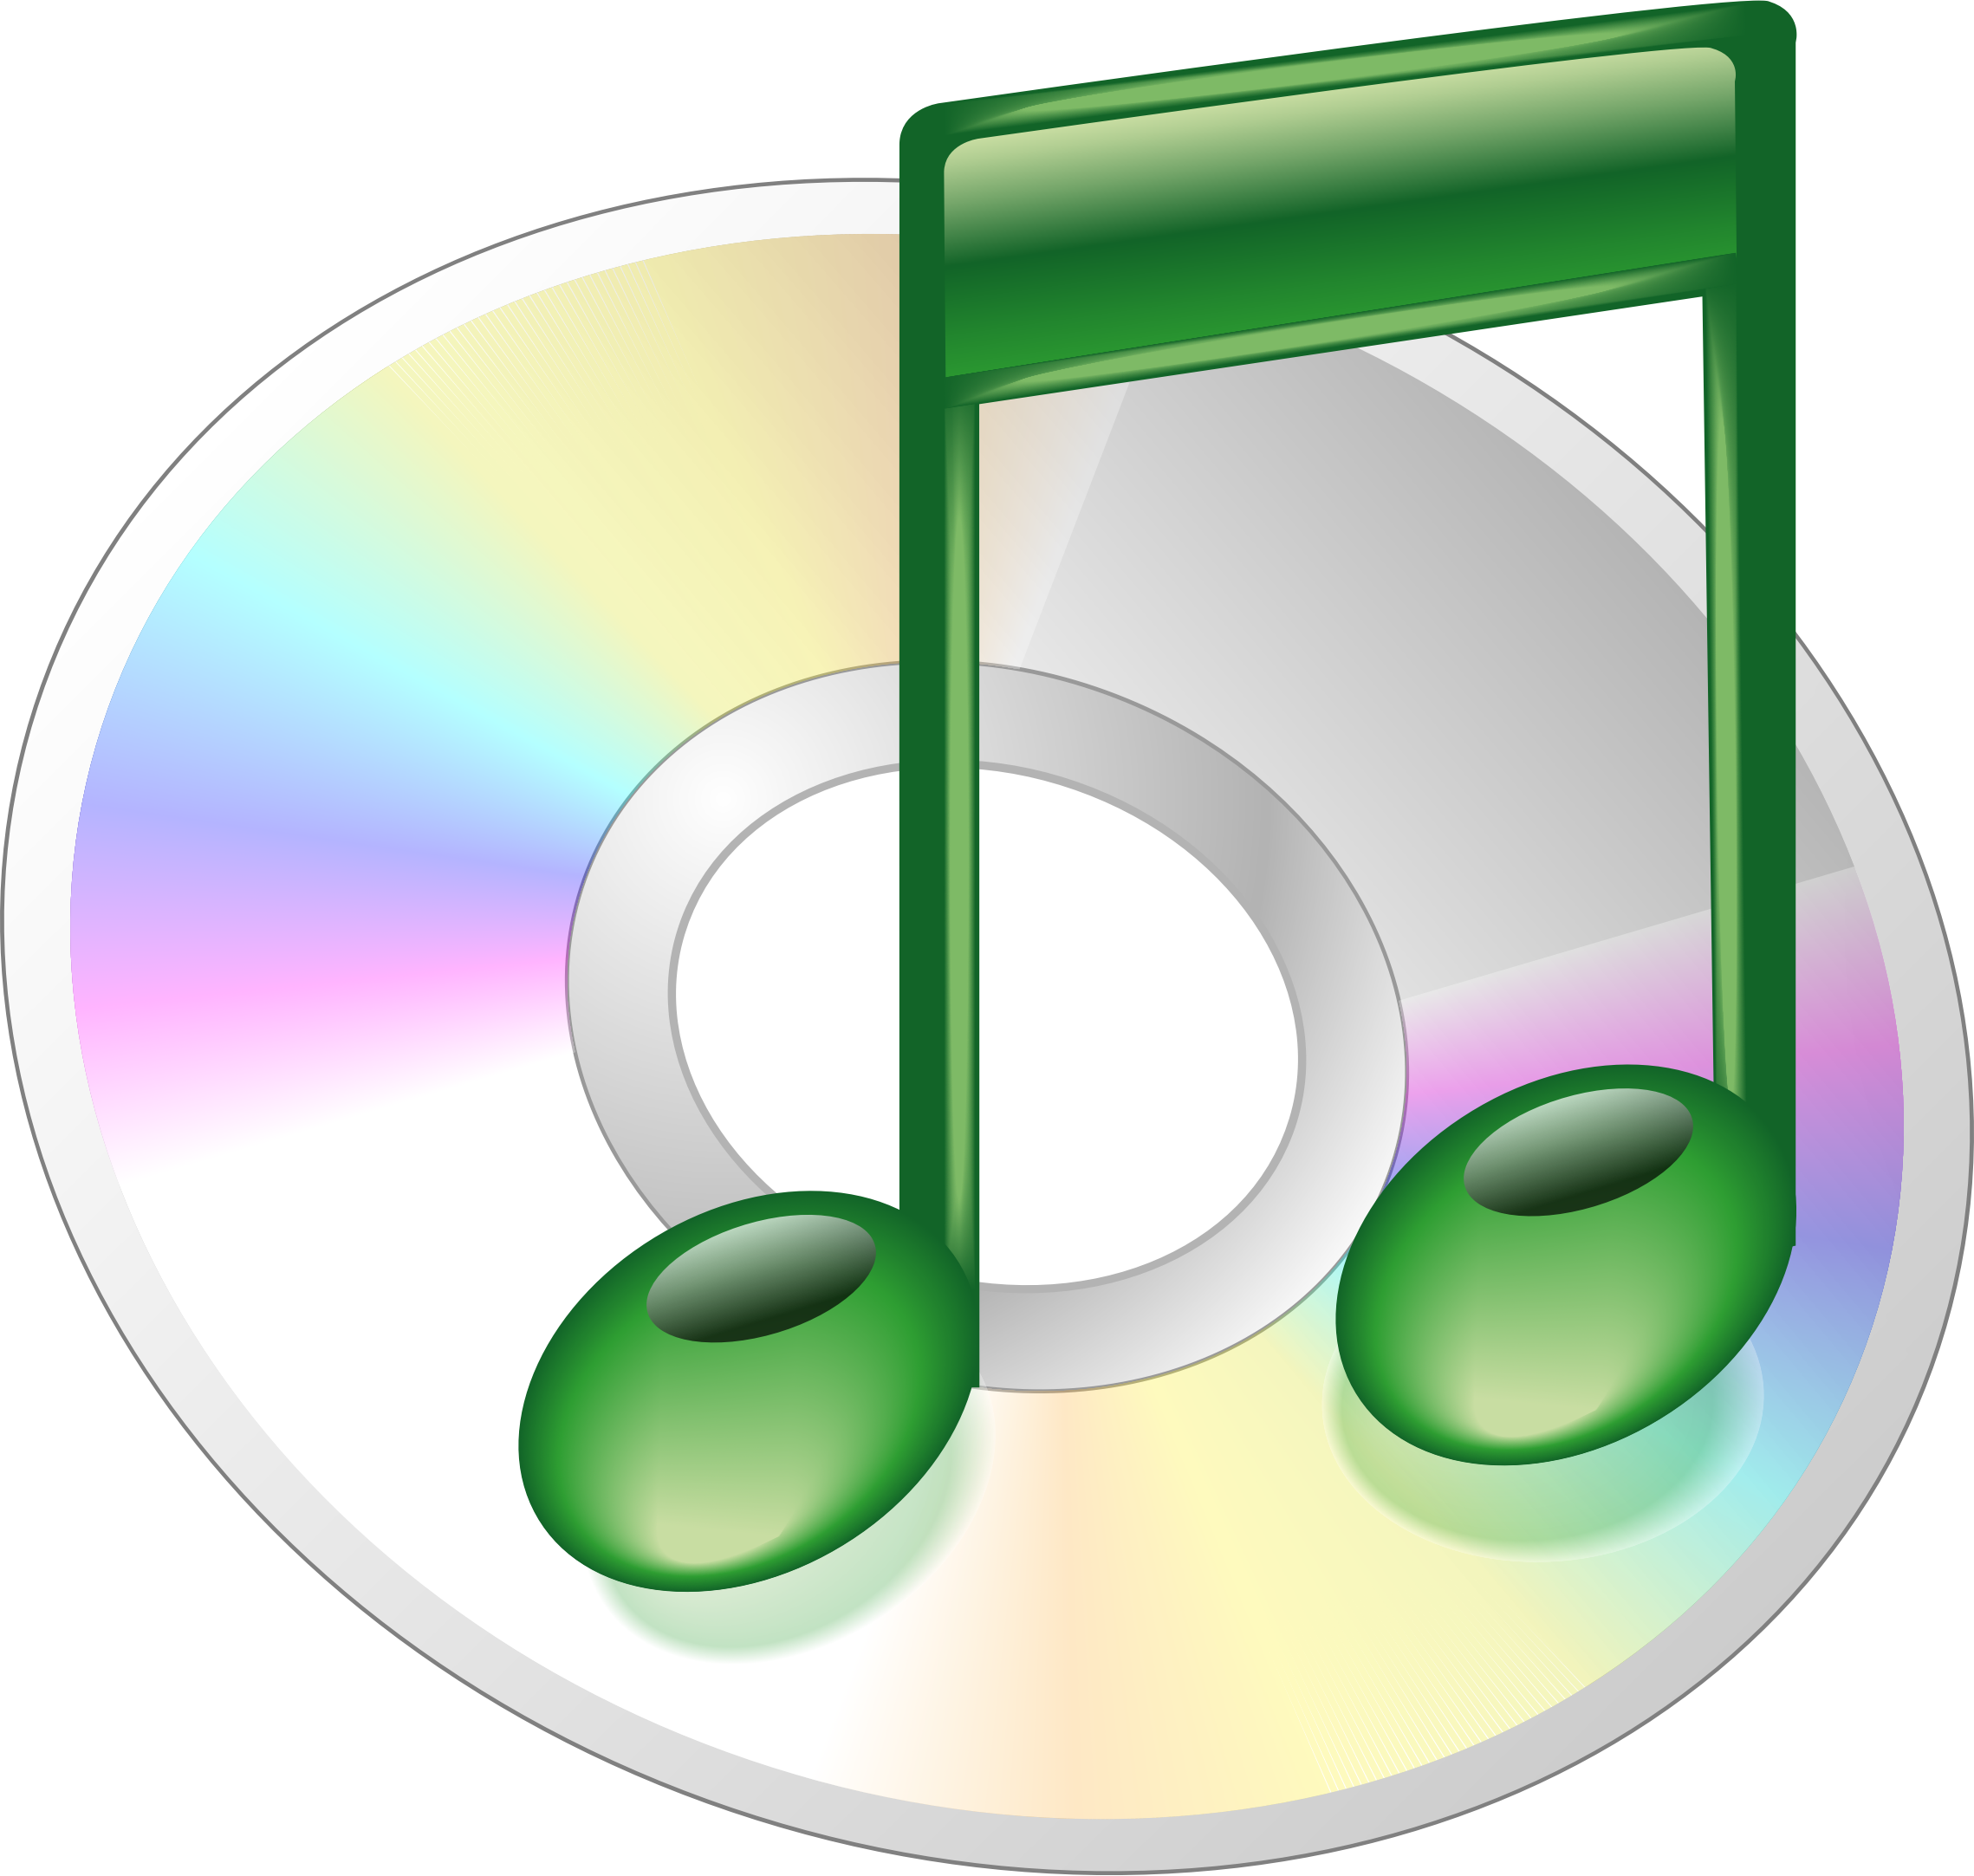 Icon big image png. Cd clipart music cd